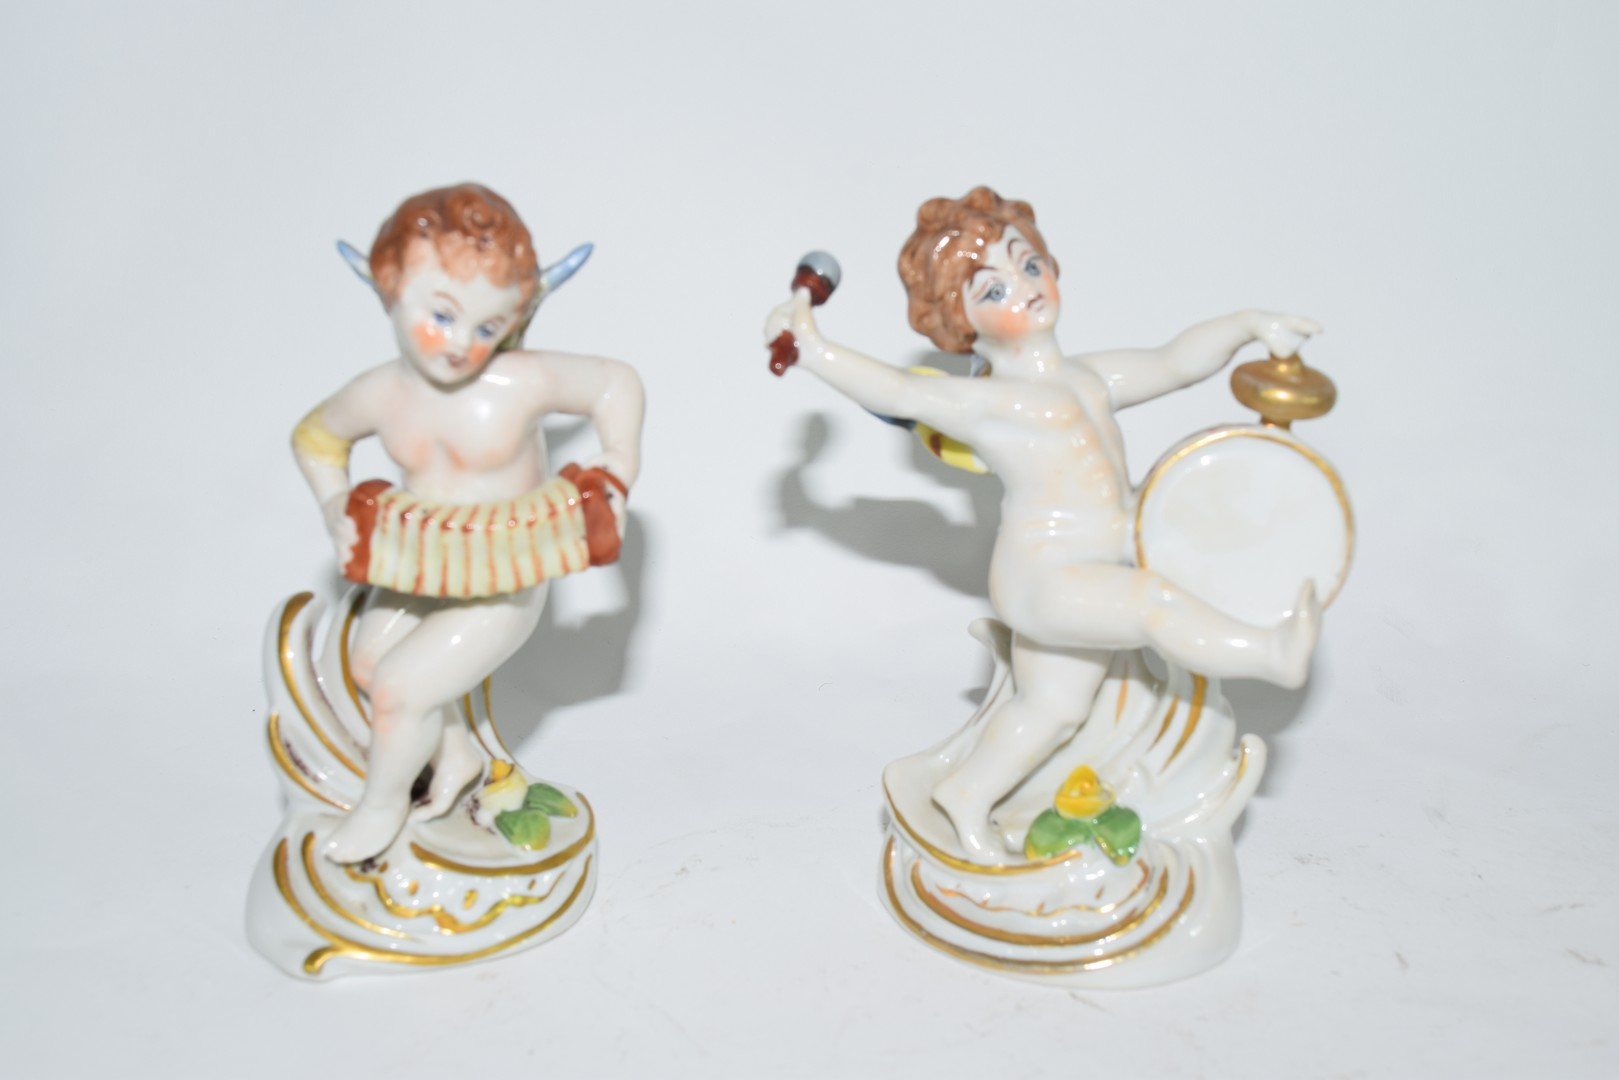 Group of Naples porcelain figures - Image 2 of 7